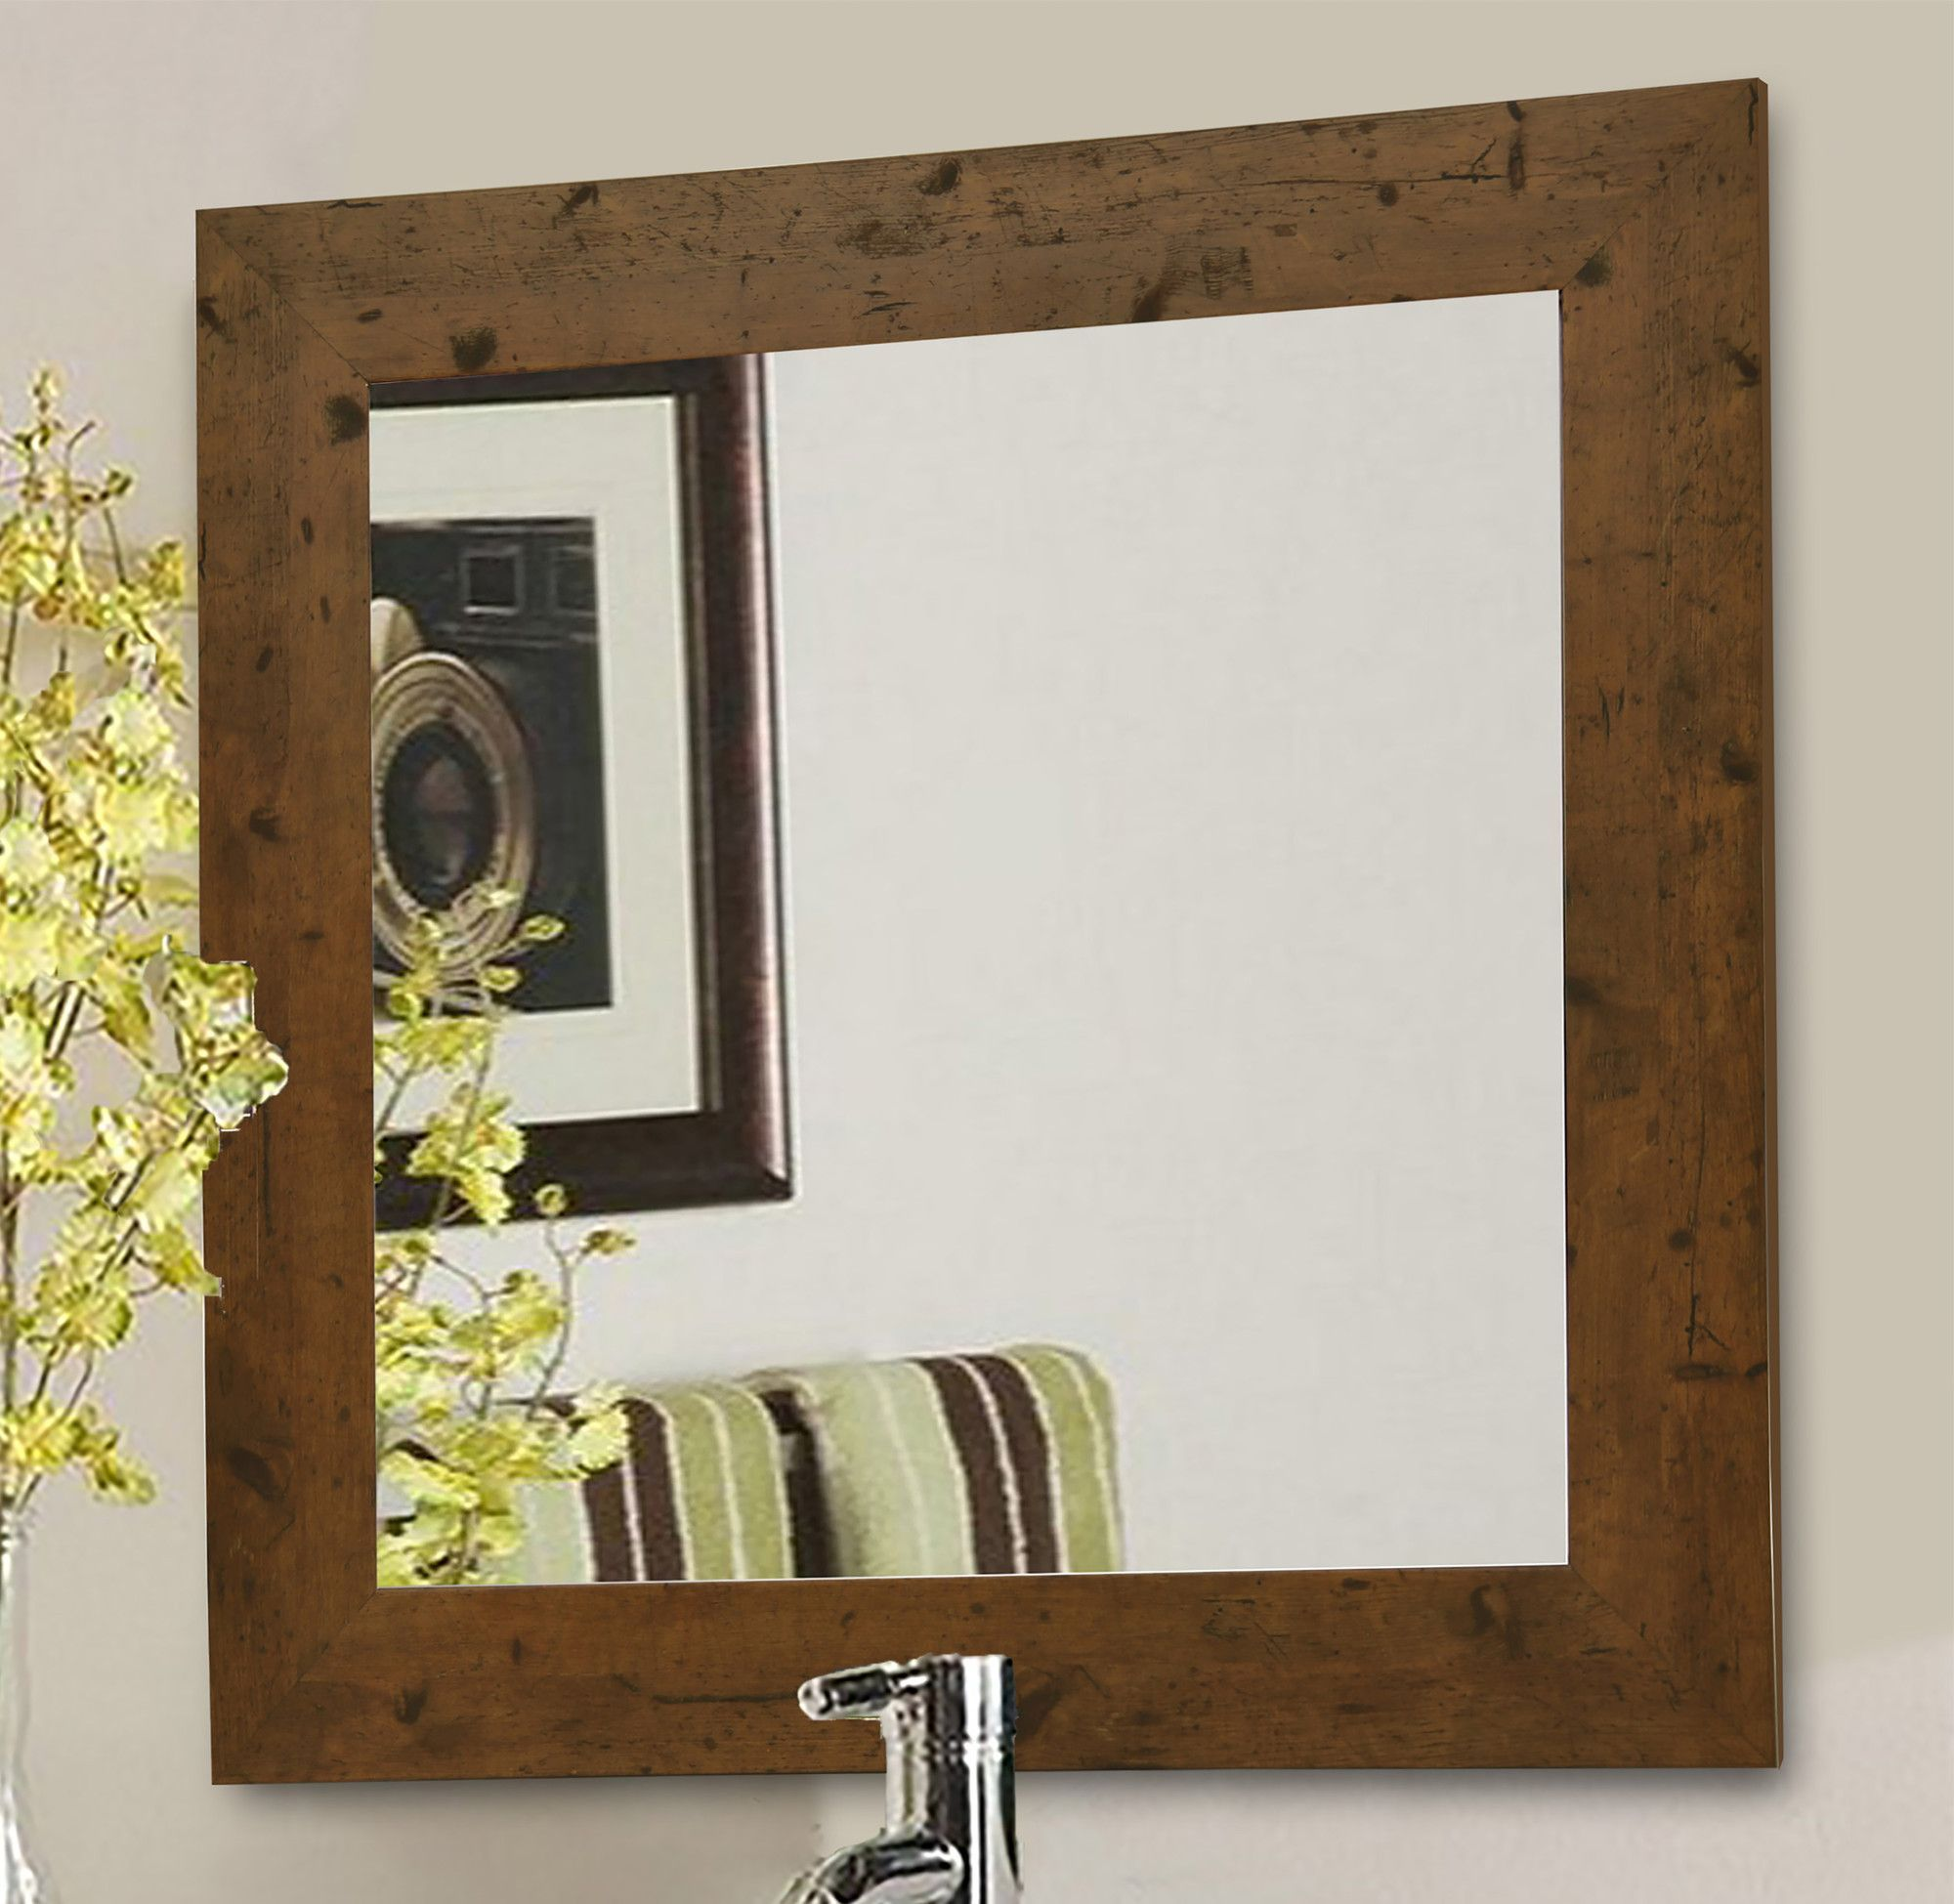 Rustic Wall Mirror | Products | Pinterest | Rustic wall mirrors ...